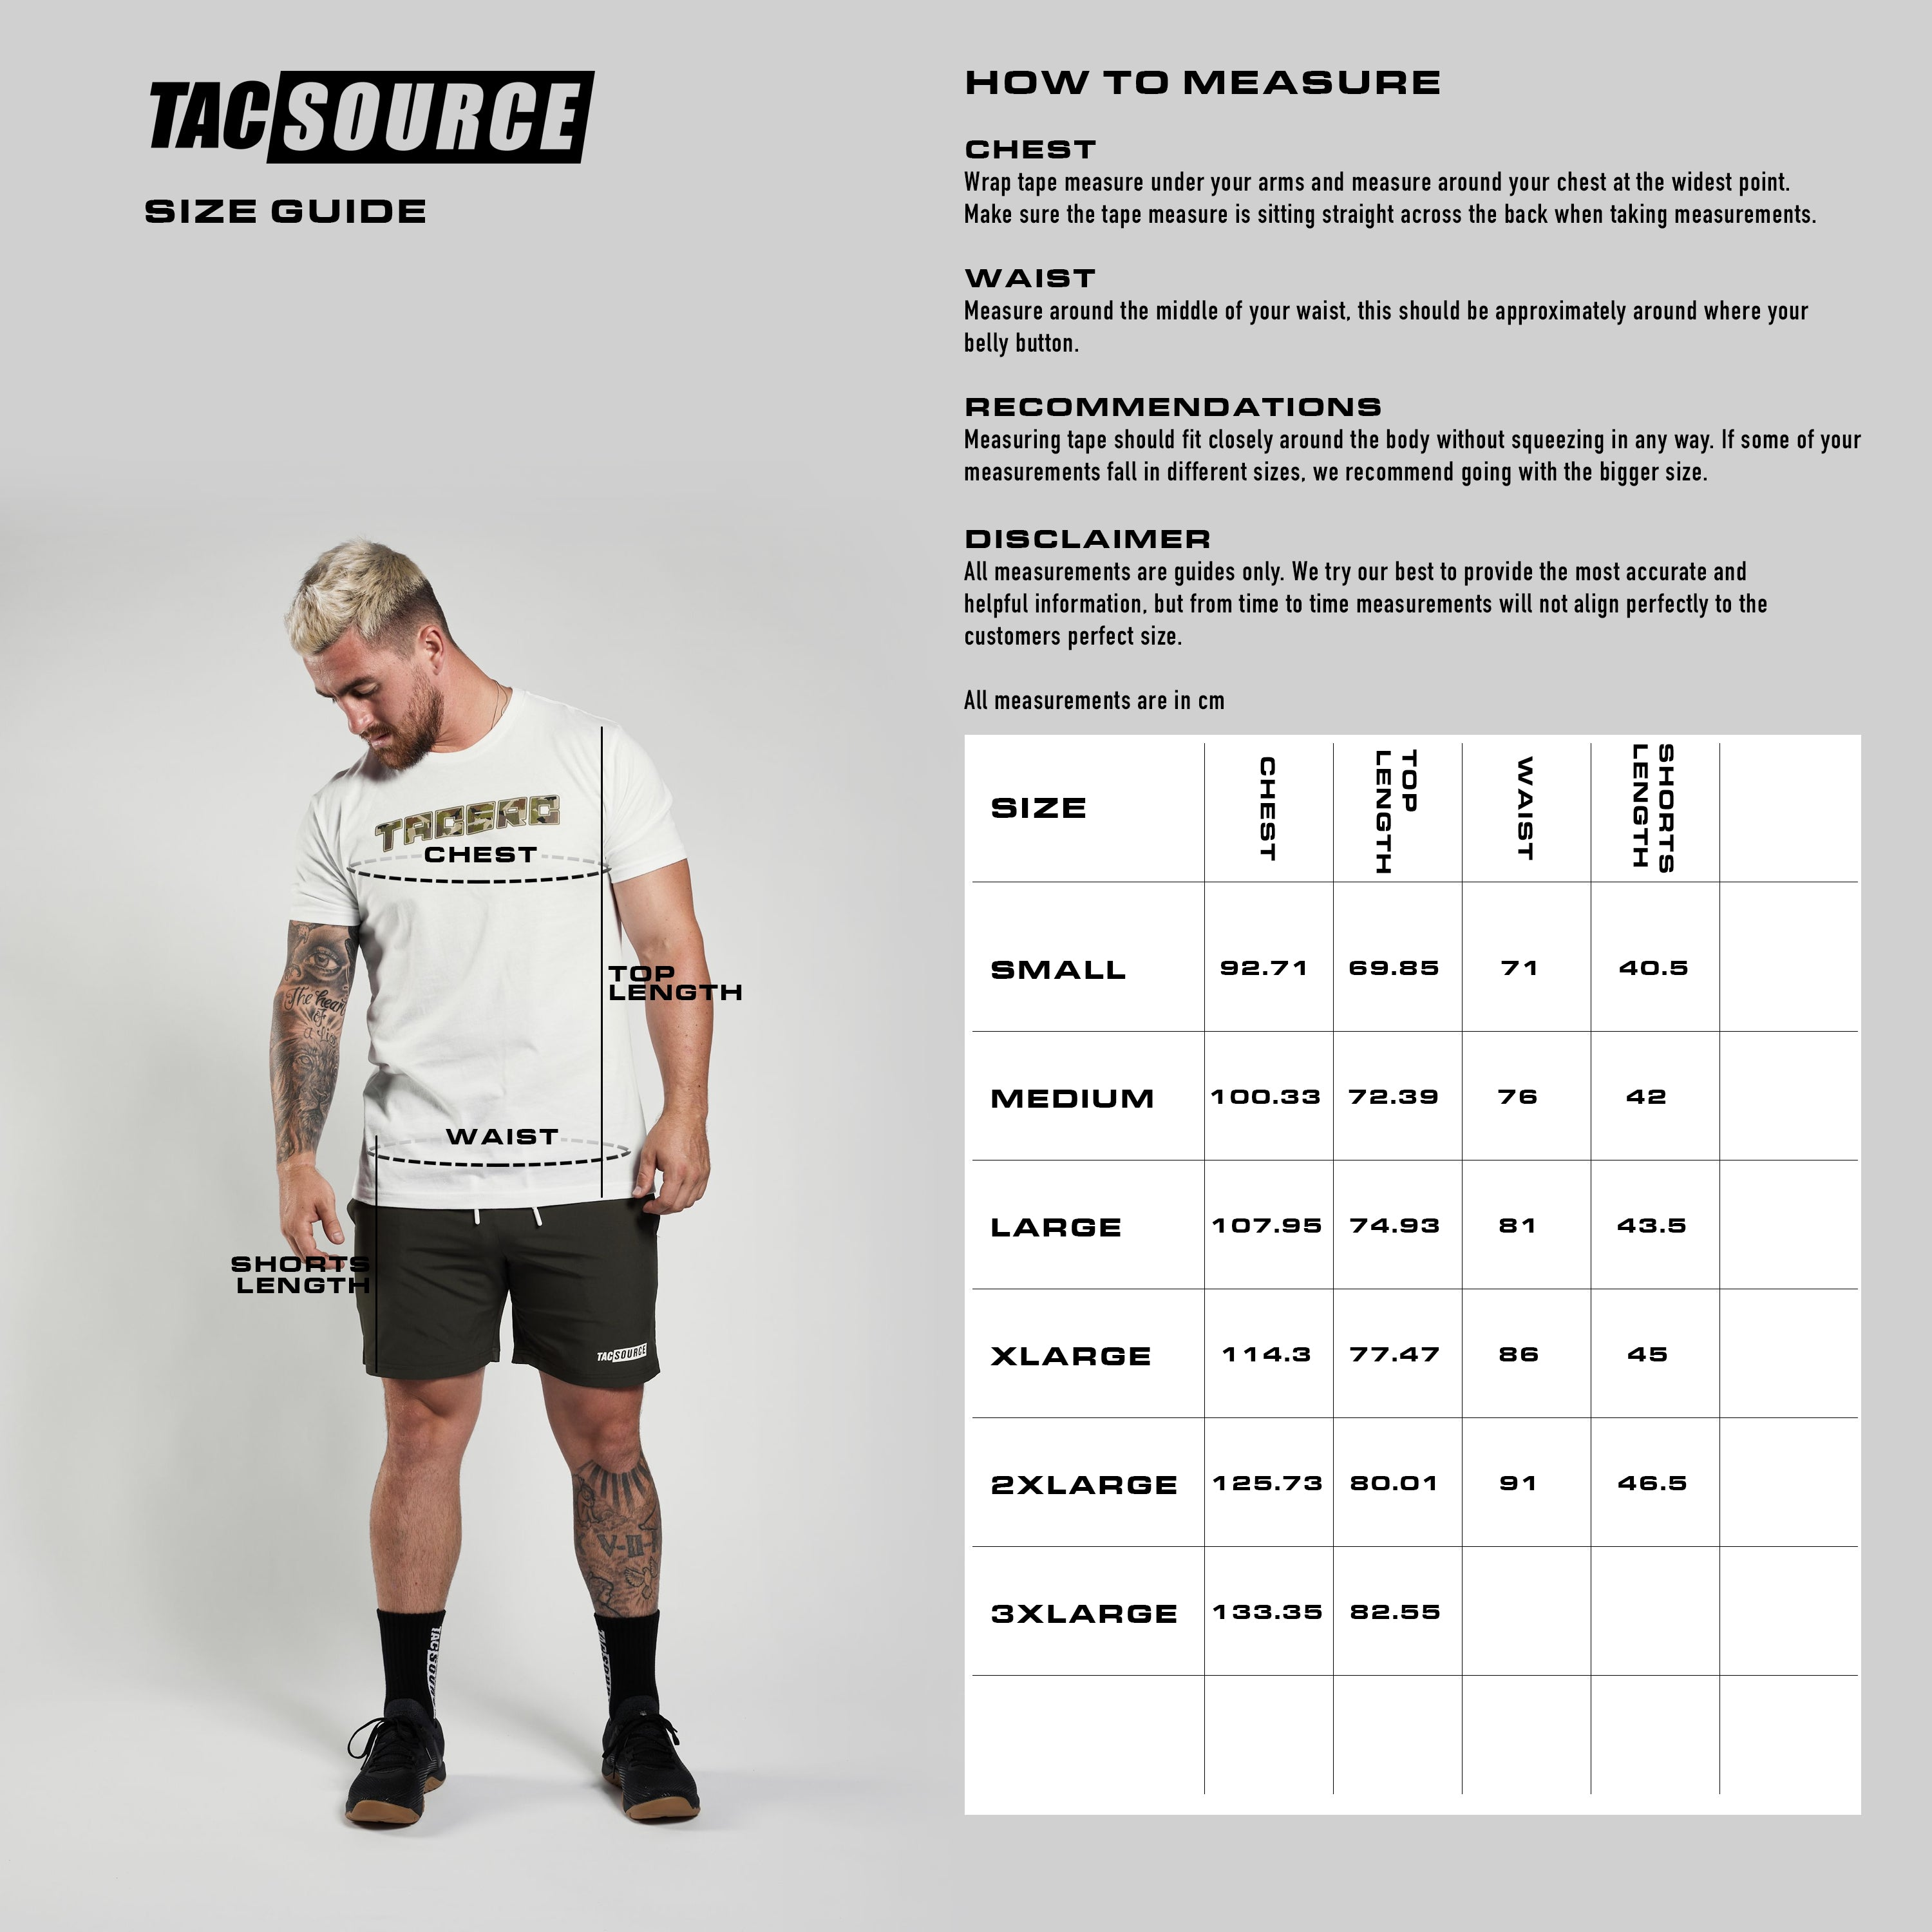 TacSource size guide